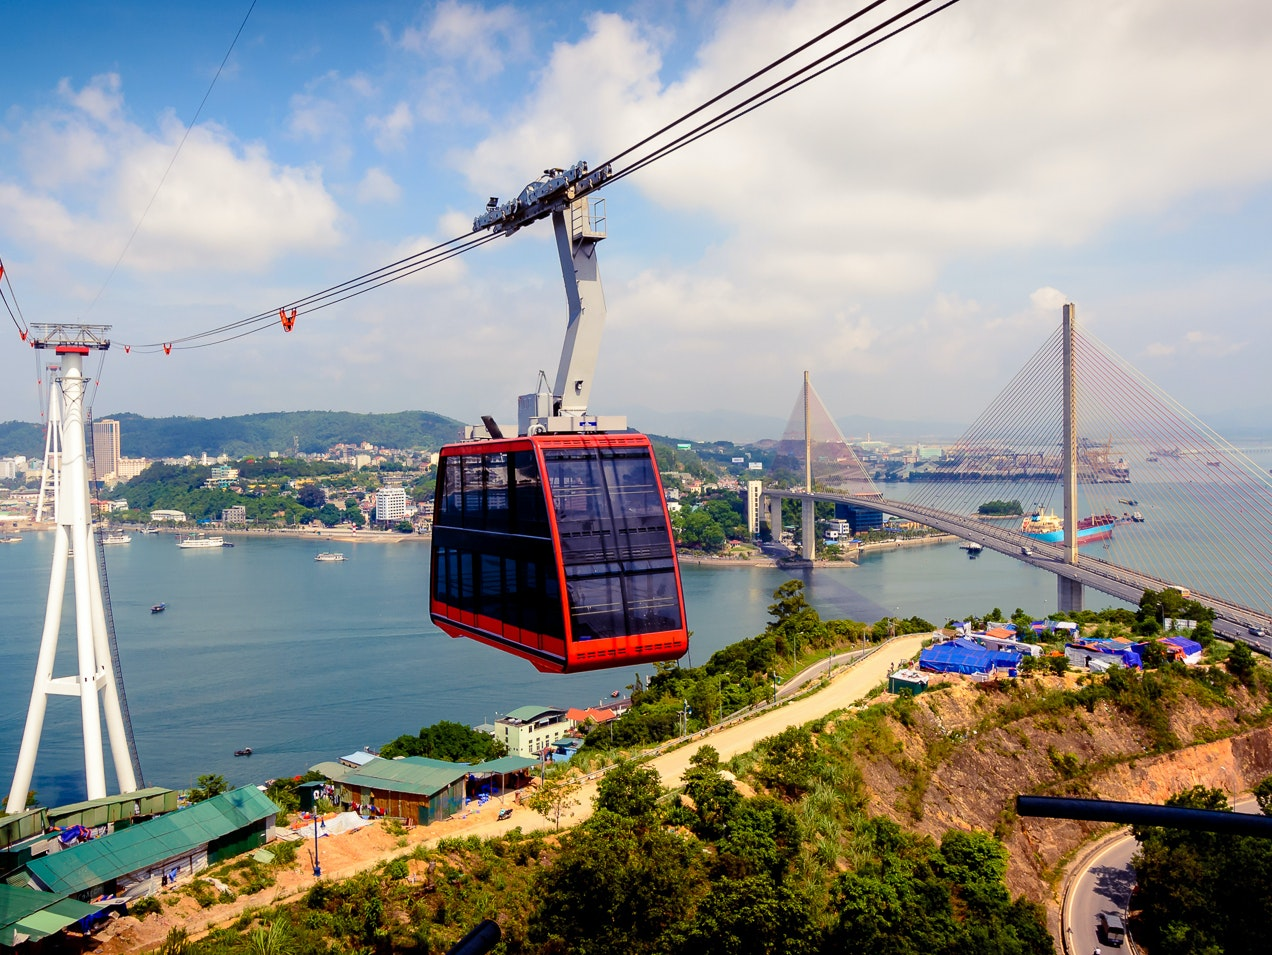 The Biggest Aerial Tramway on Earth Is an Engineering Marvel